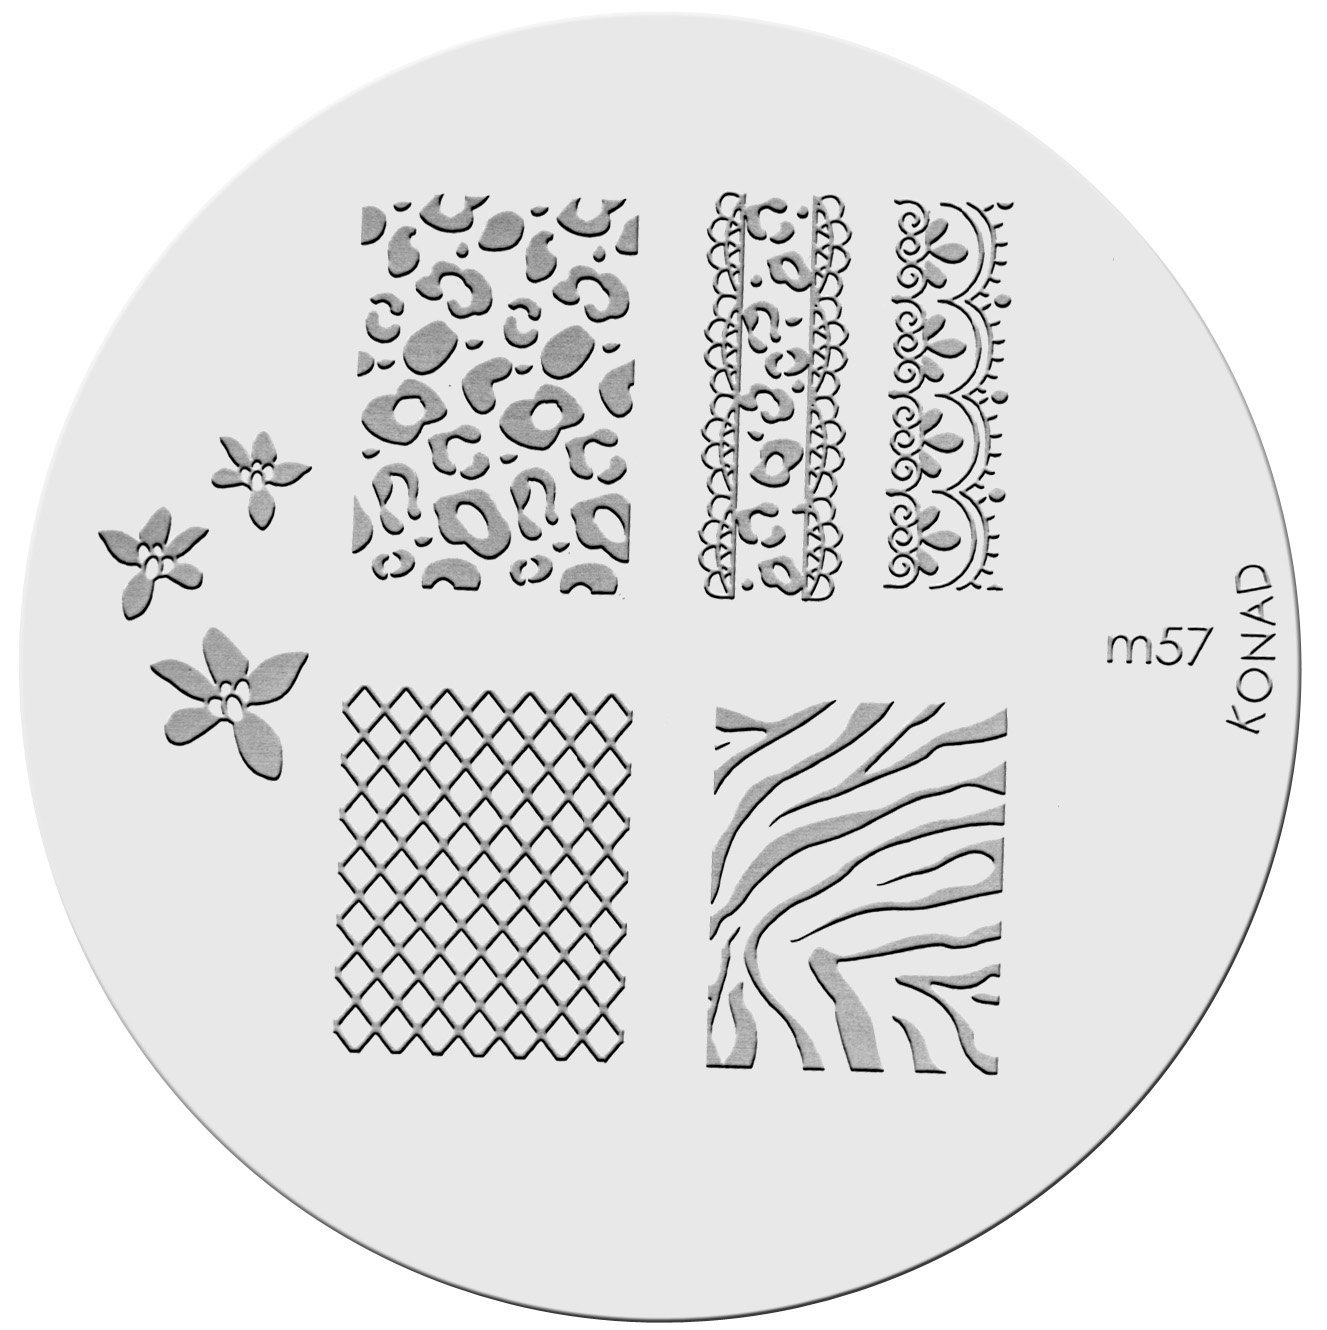 Cheap Konad Stamping Plate, find Konad Stamping Plate deals on line ...